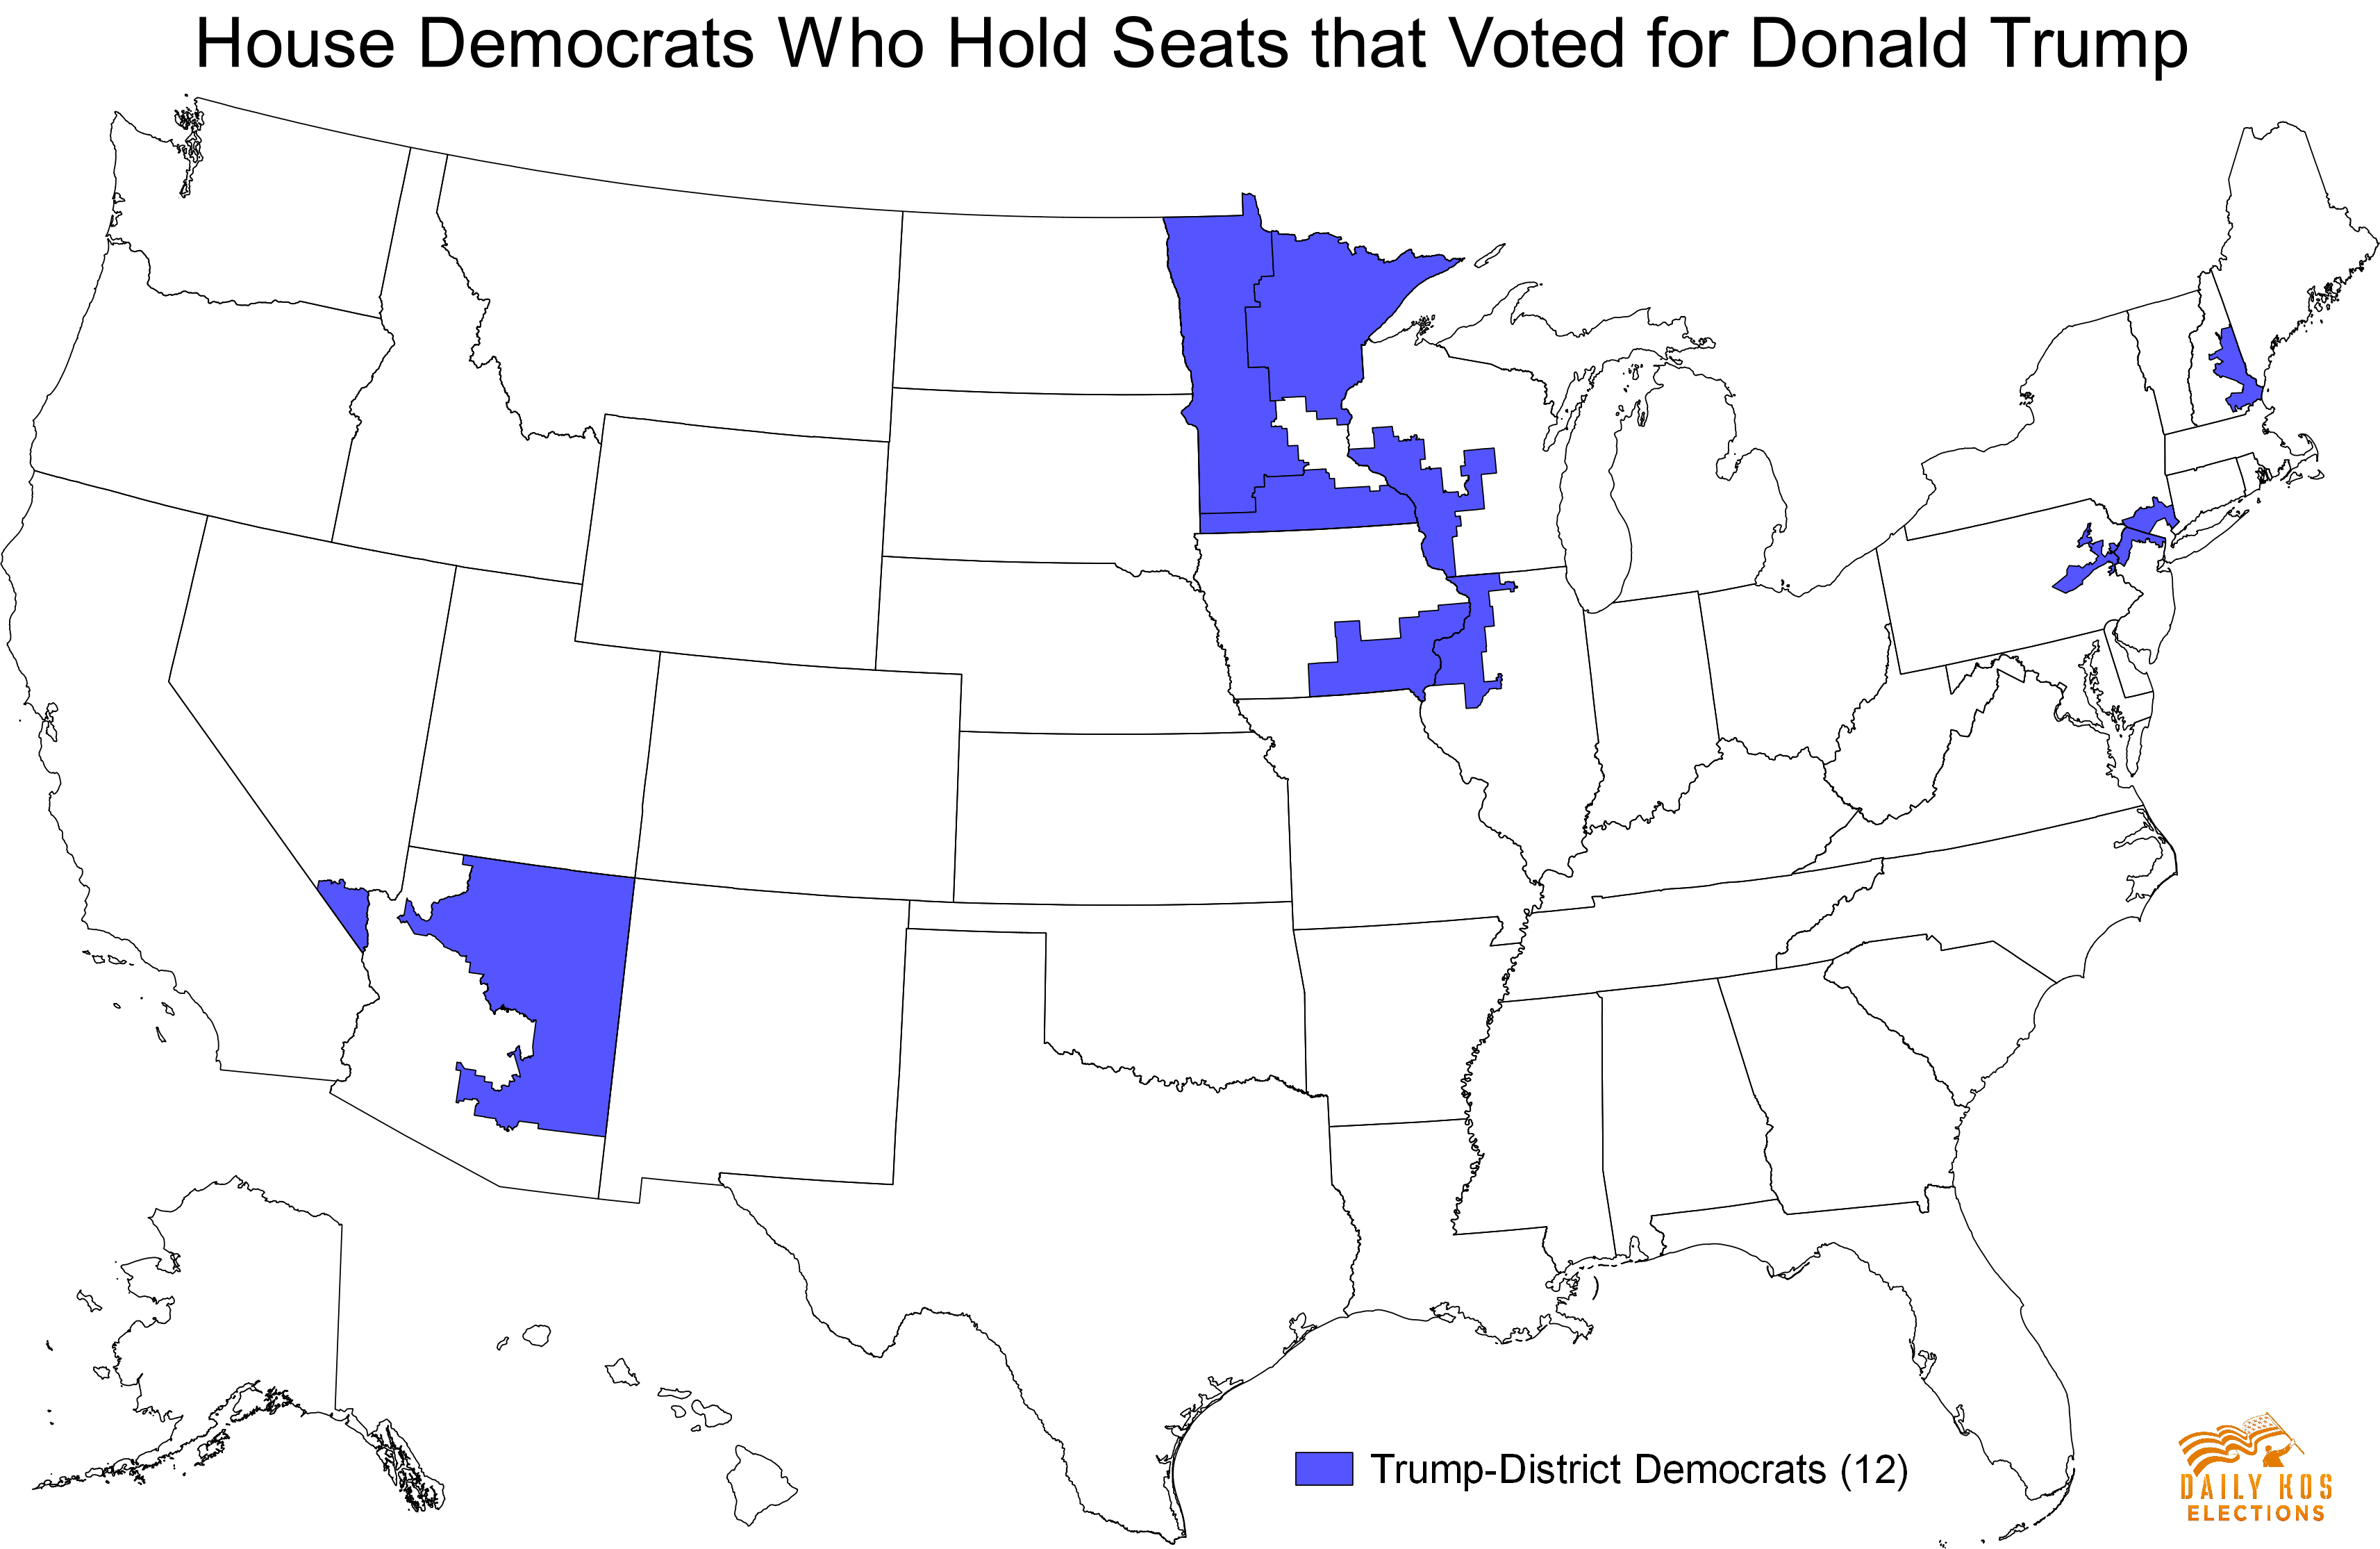 These 12 Democrats hold congressional districts that voted for